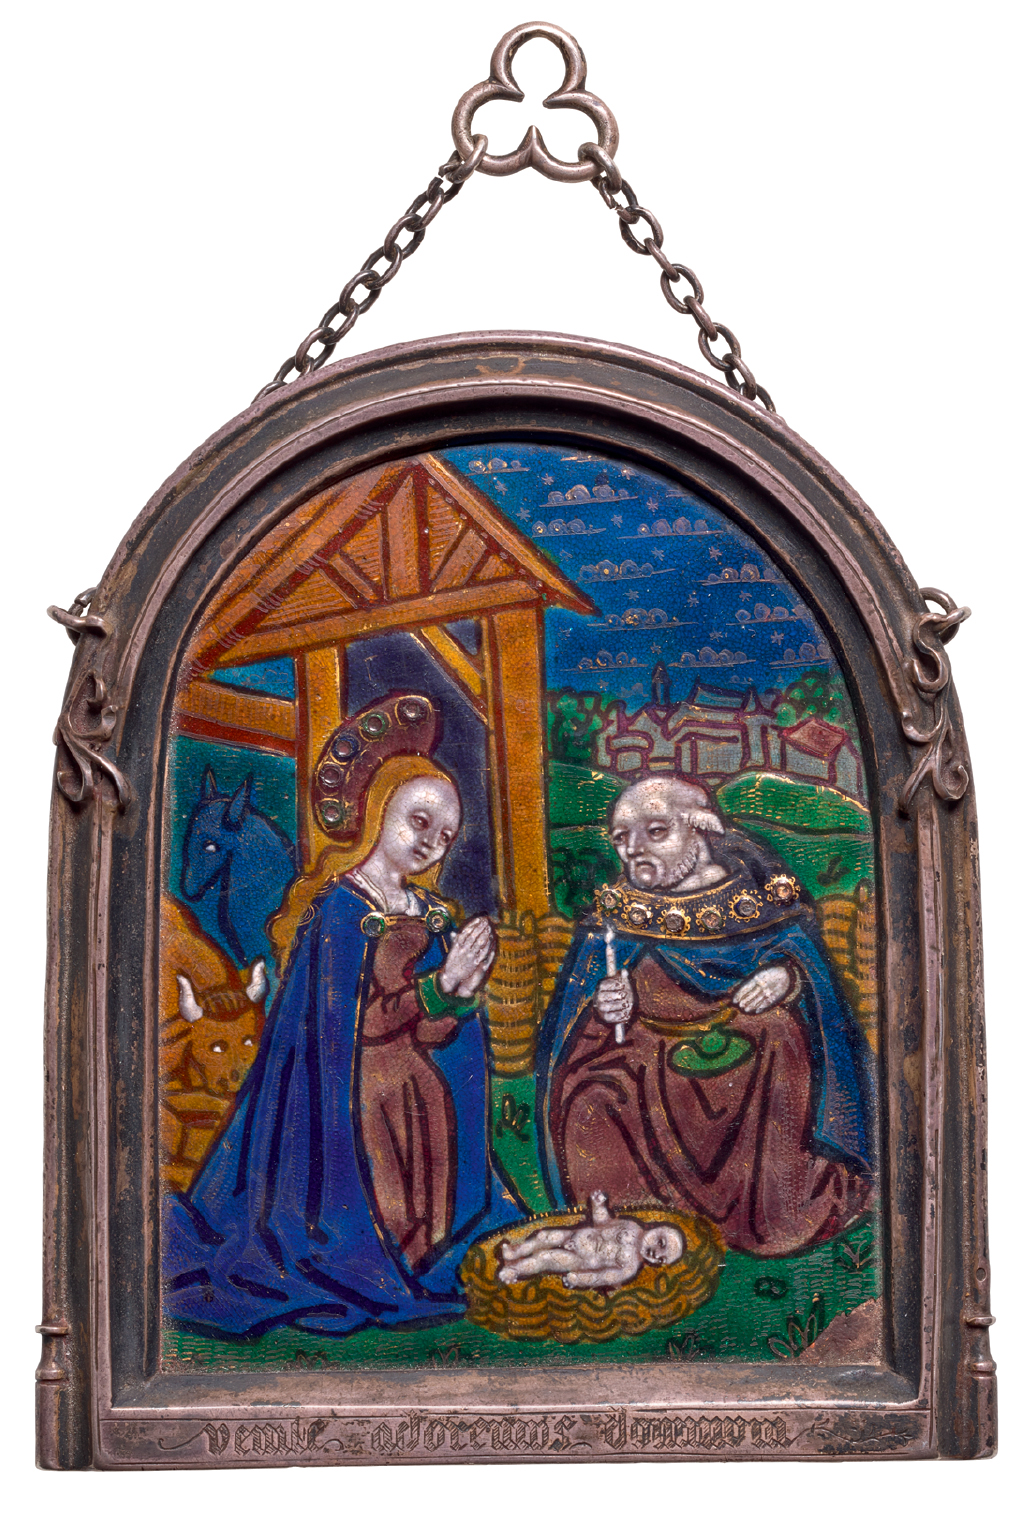 FRENCH, LIMOGES, EARLY 16TH CENTURY | PLAQUE WITH THE ADORATION OF THE CHRIST CHILD